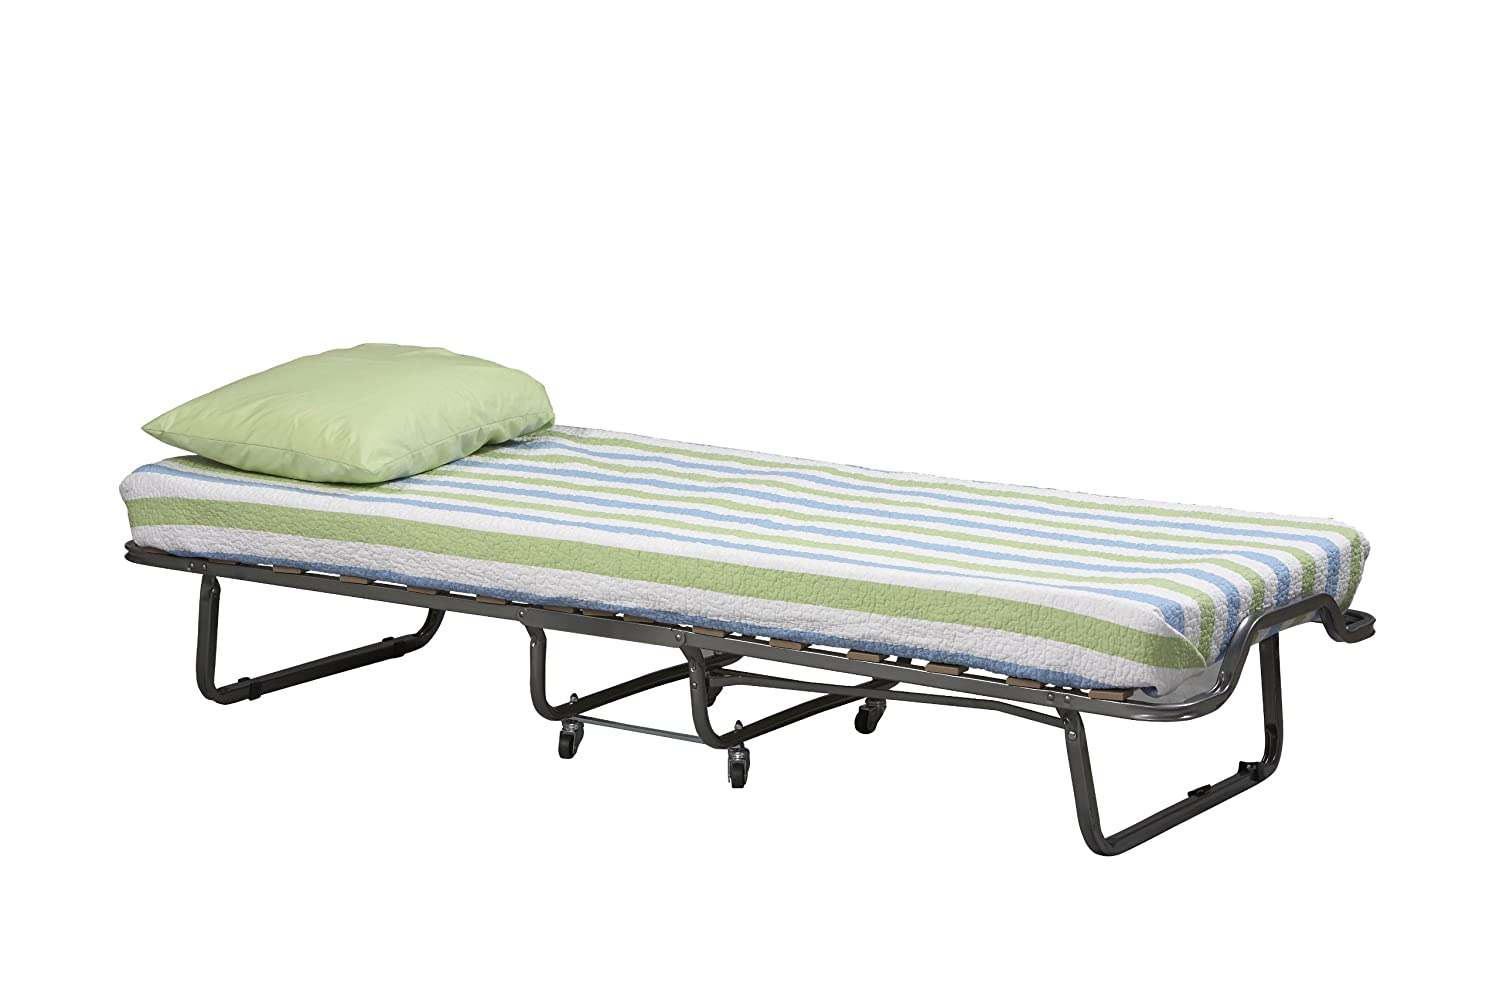 away steel roll beds platform products rollaway bases foldable bed